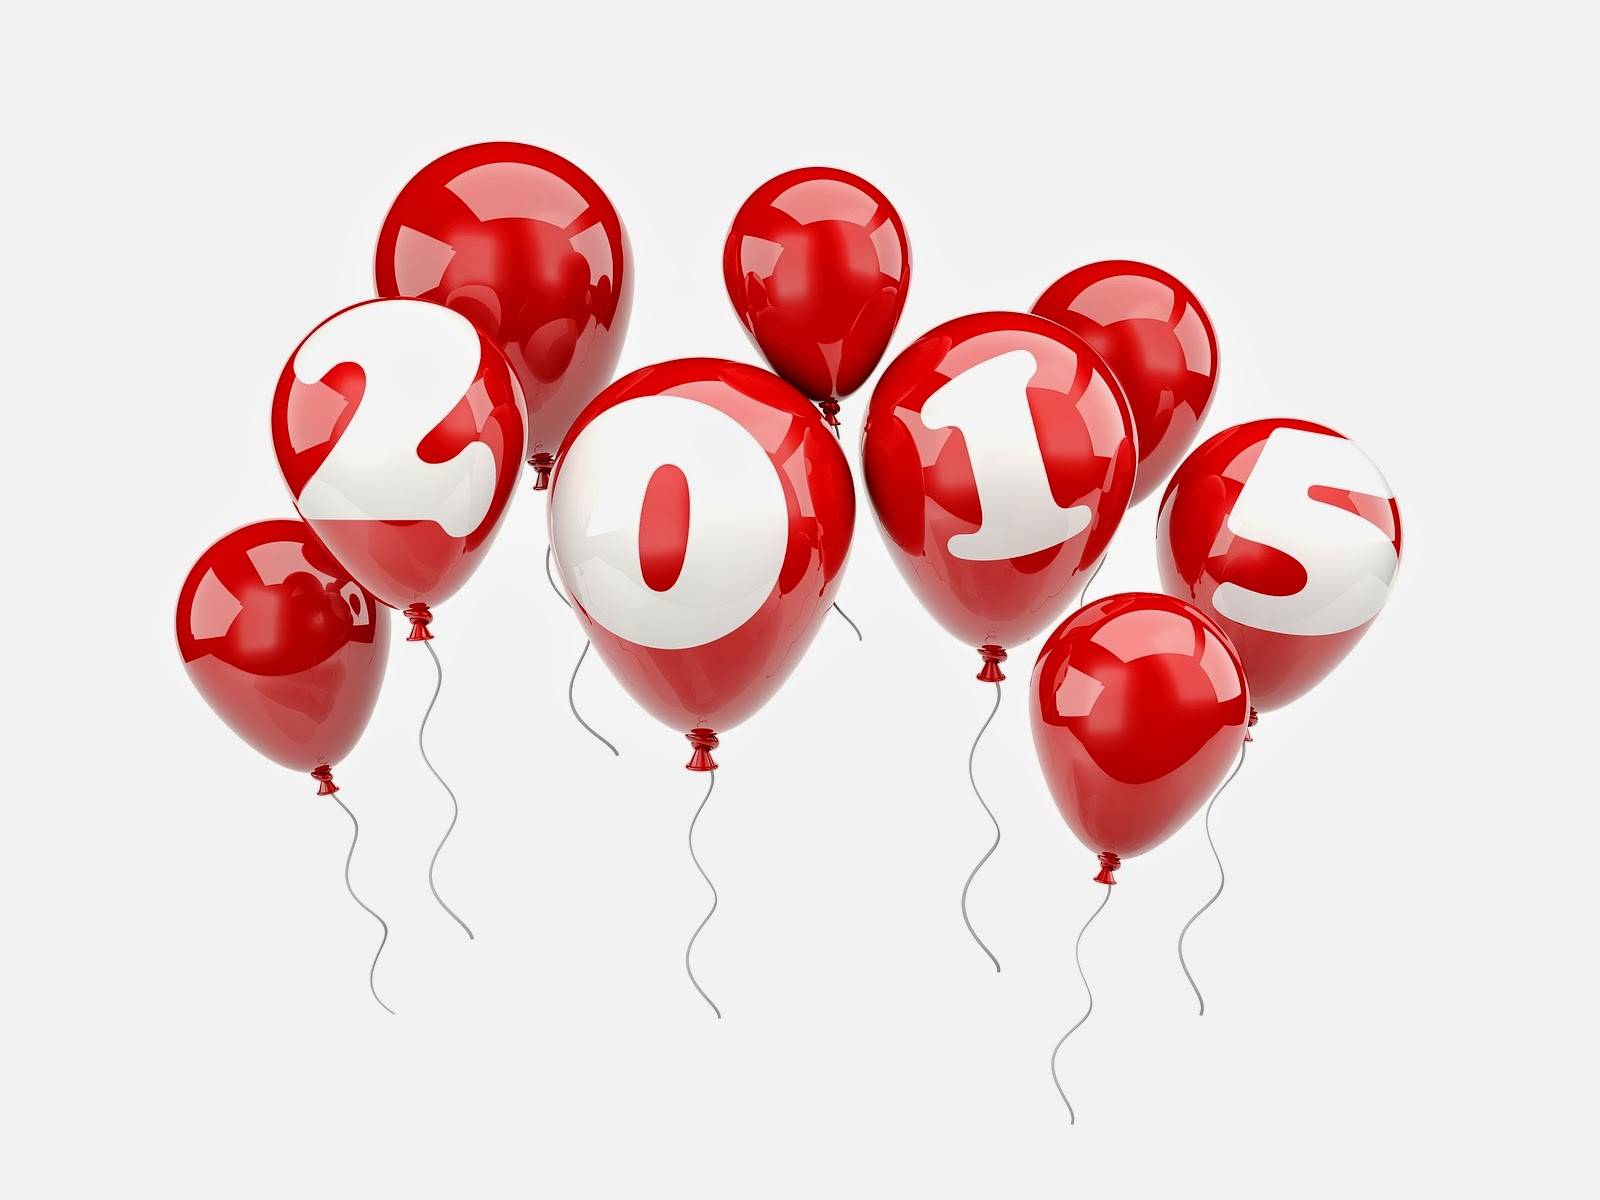 Red Balloon Happy New Year 2015 Wallpaper For Desktop 488289 1600x1200